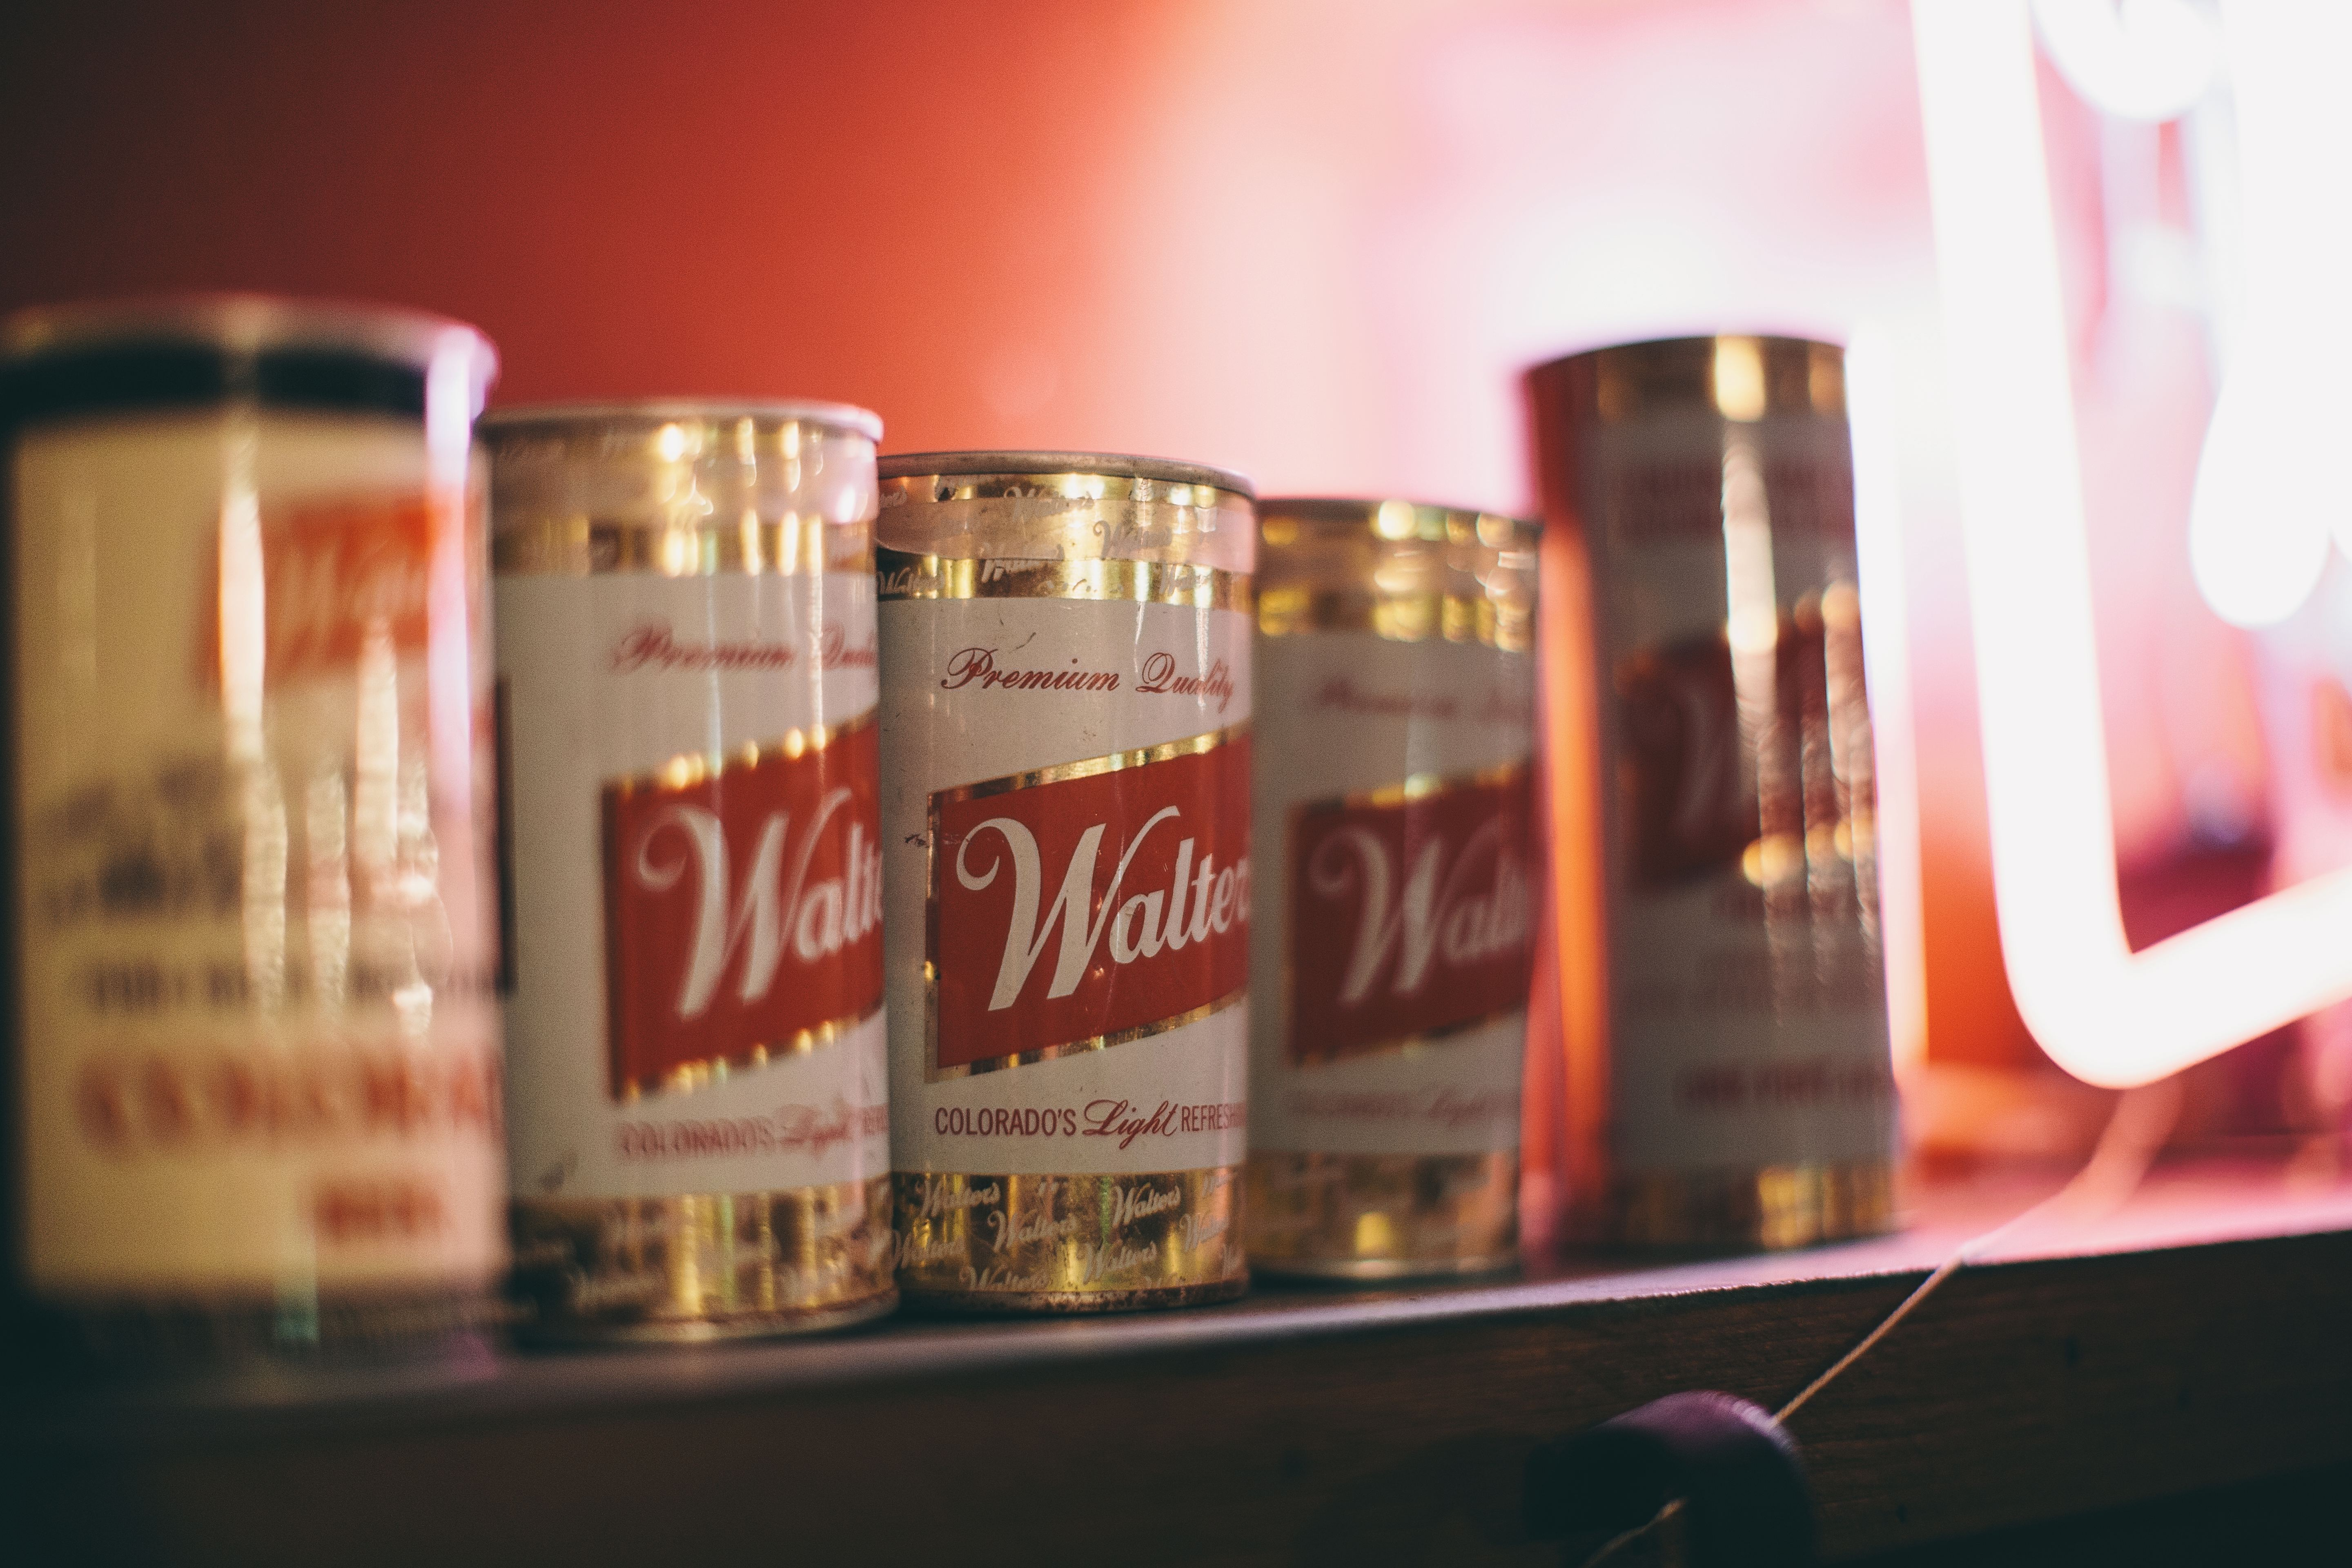 Vintage Walter's Cans